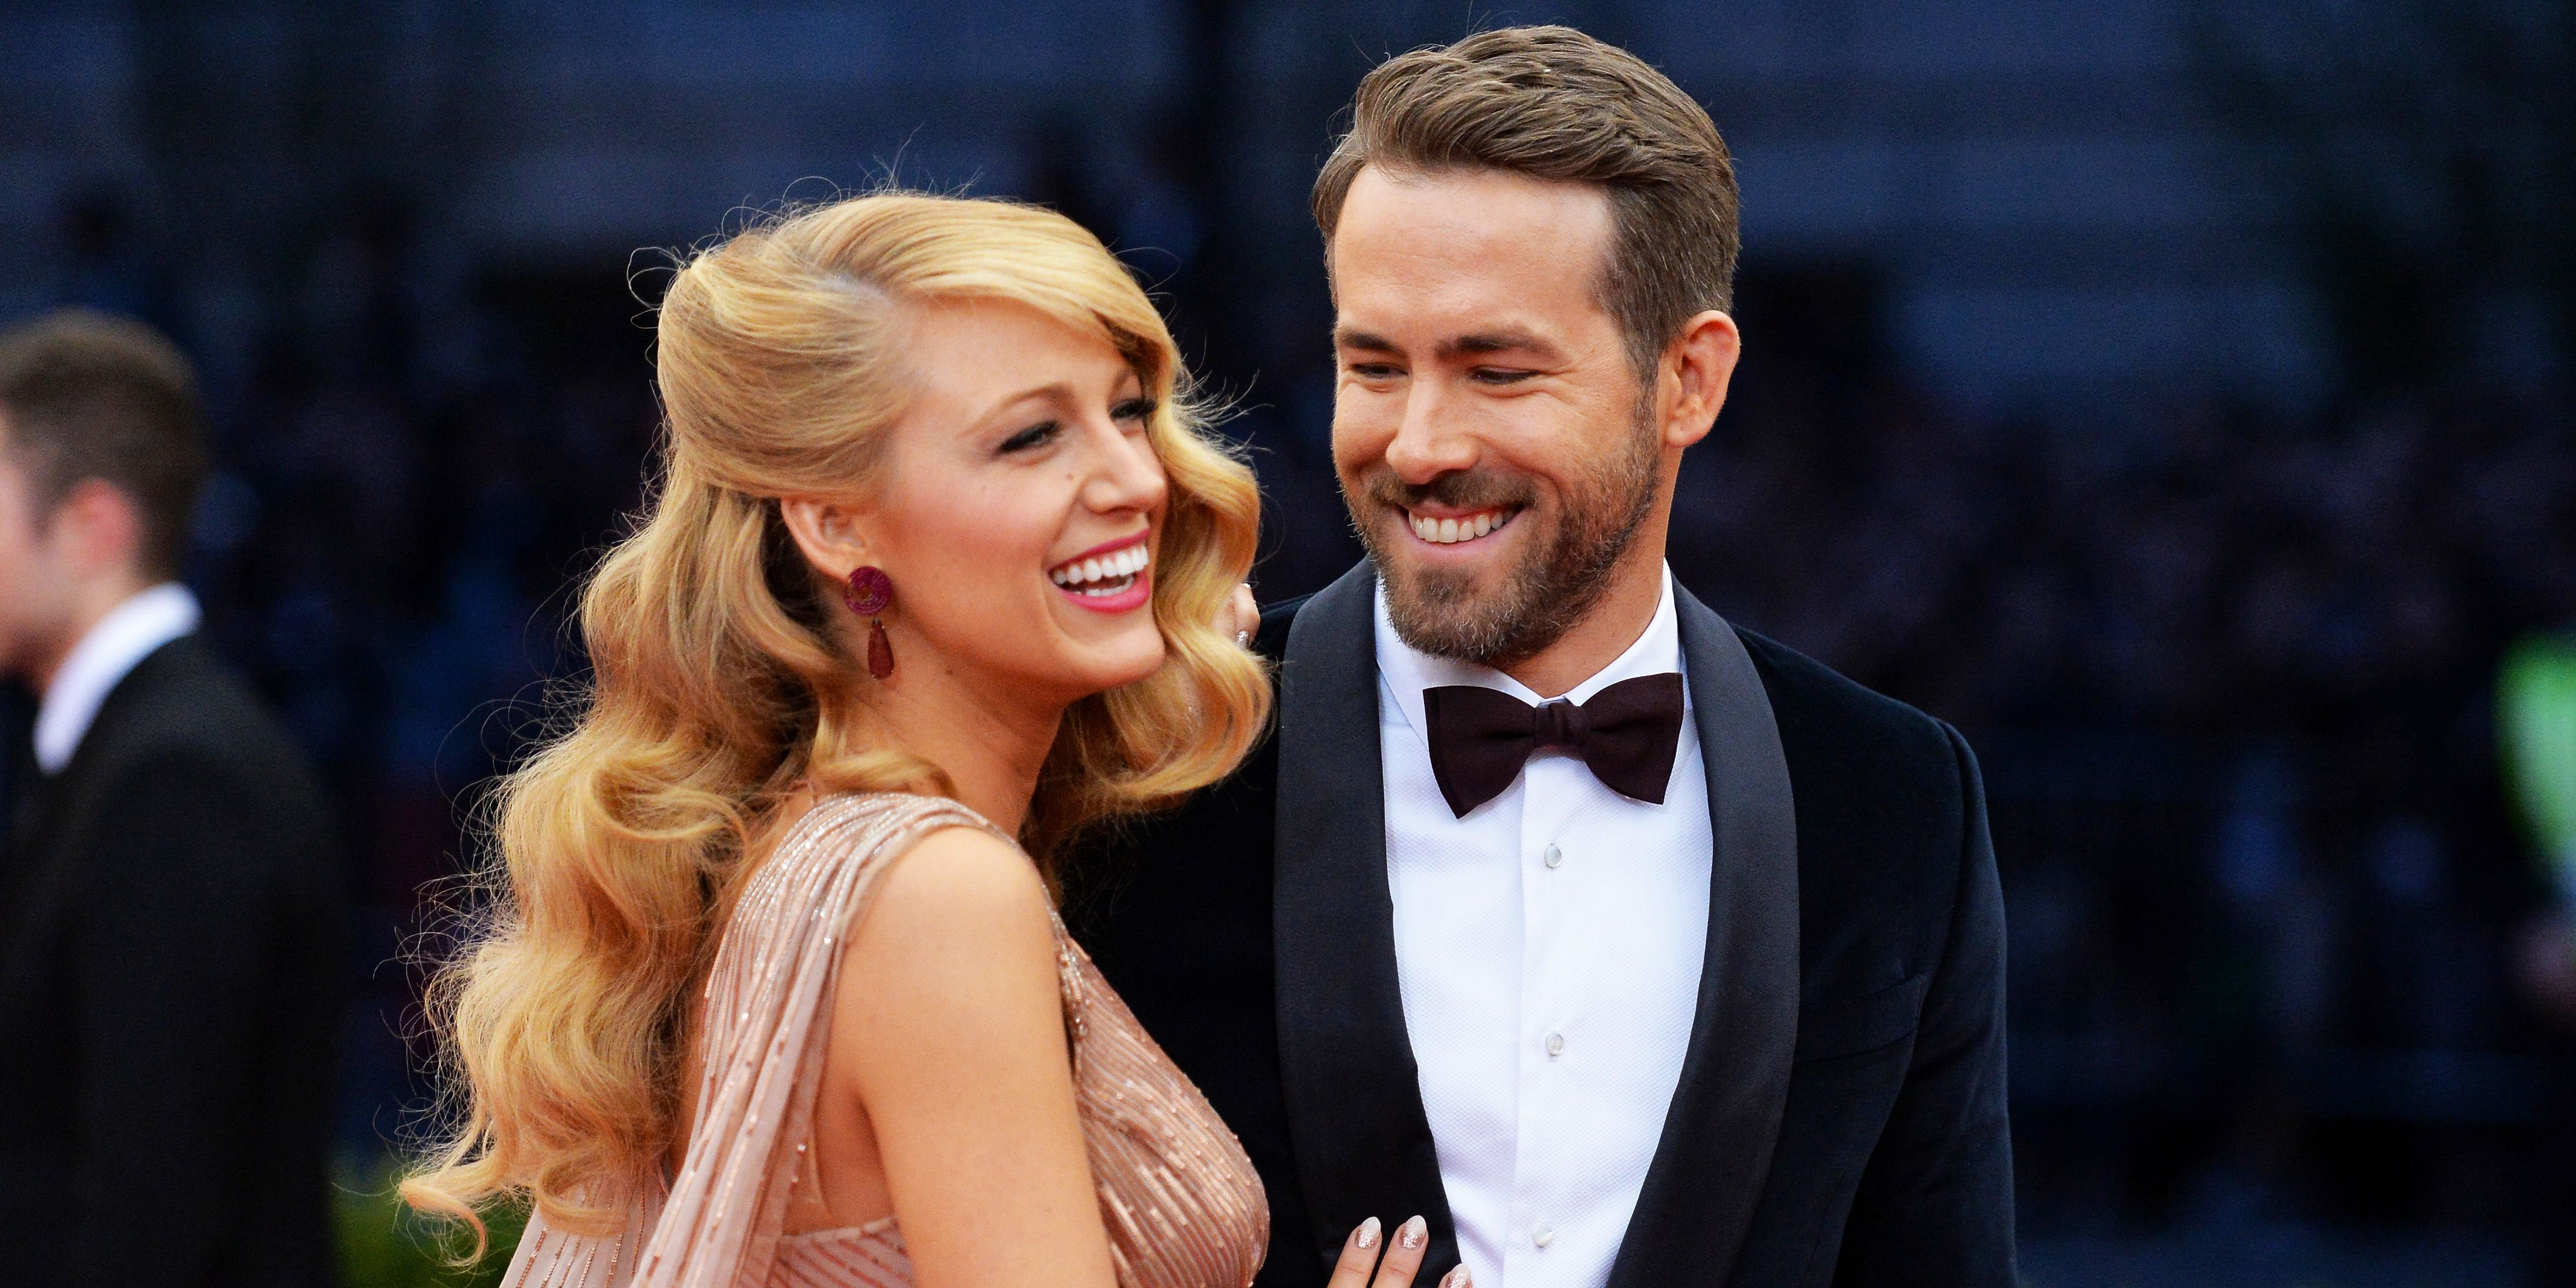 Blake Lively Breaks Instagram Hiatus To Flirt With Husband Ryan Reynolds Months After Pregnancy Announcement